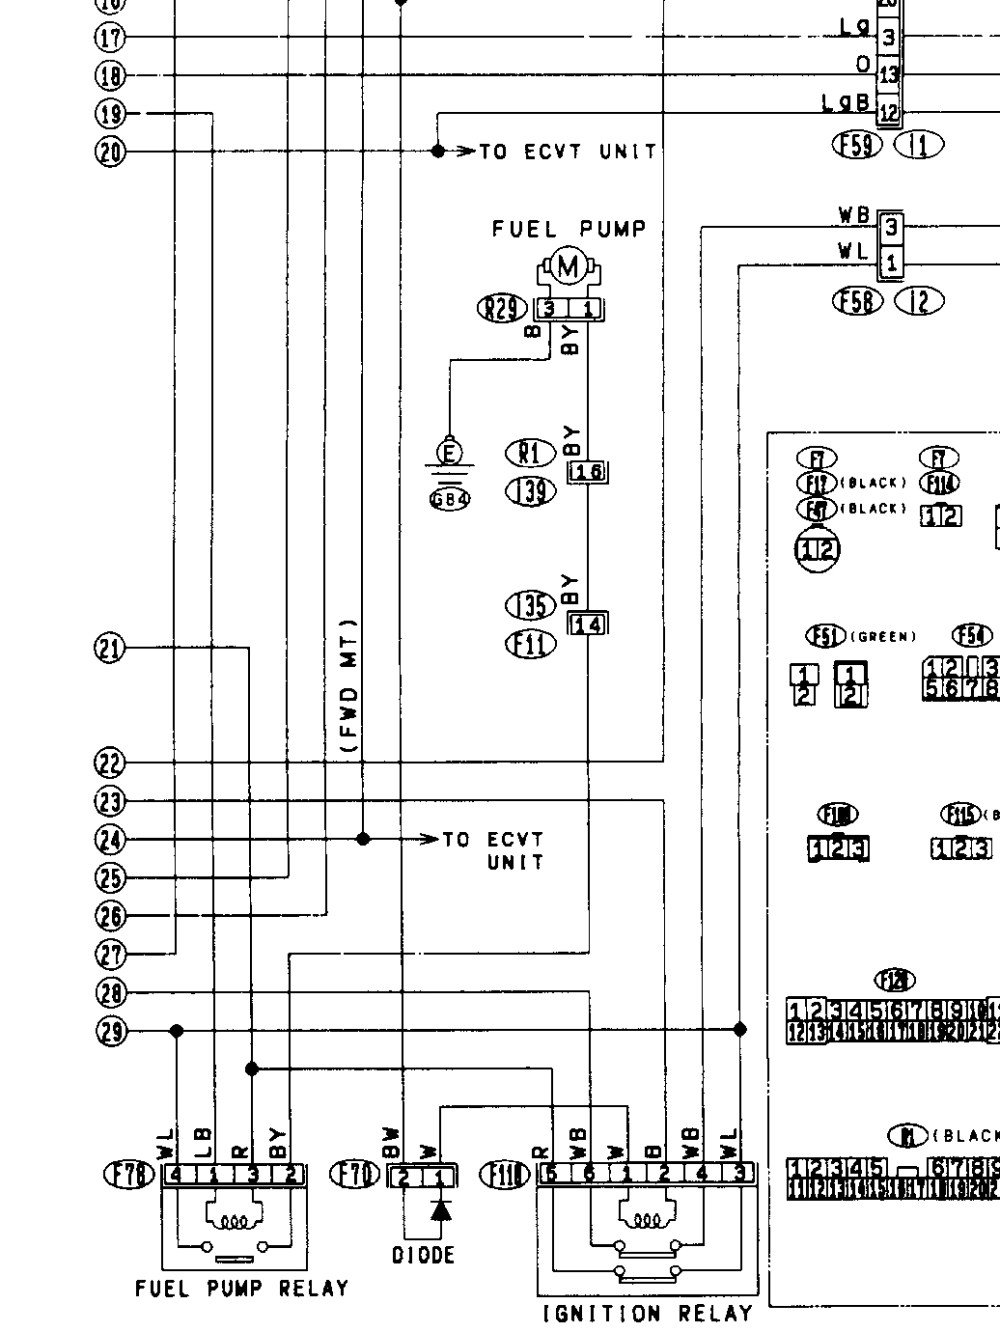 medium resolution of click to see a full size view here is the partial wiring diagram of the subaru s